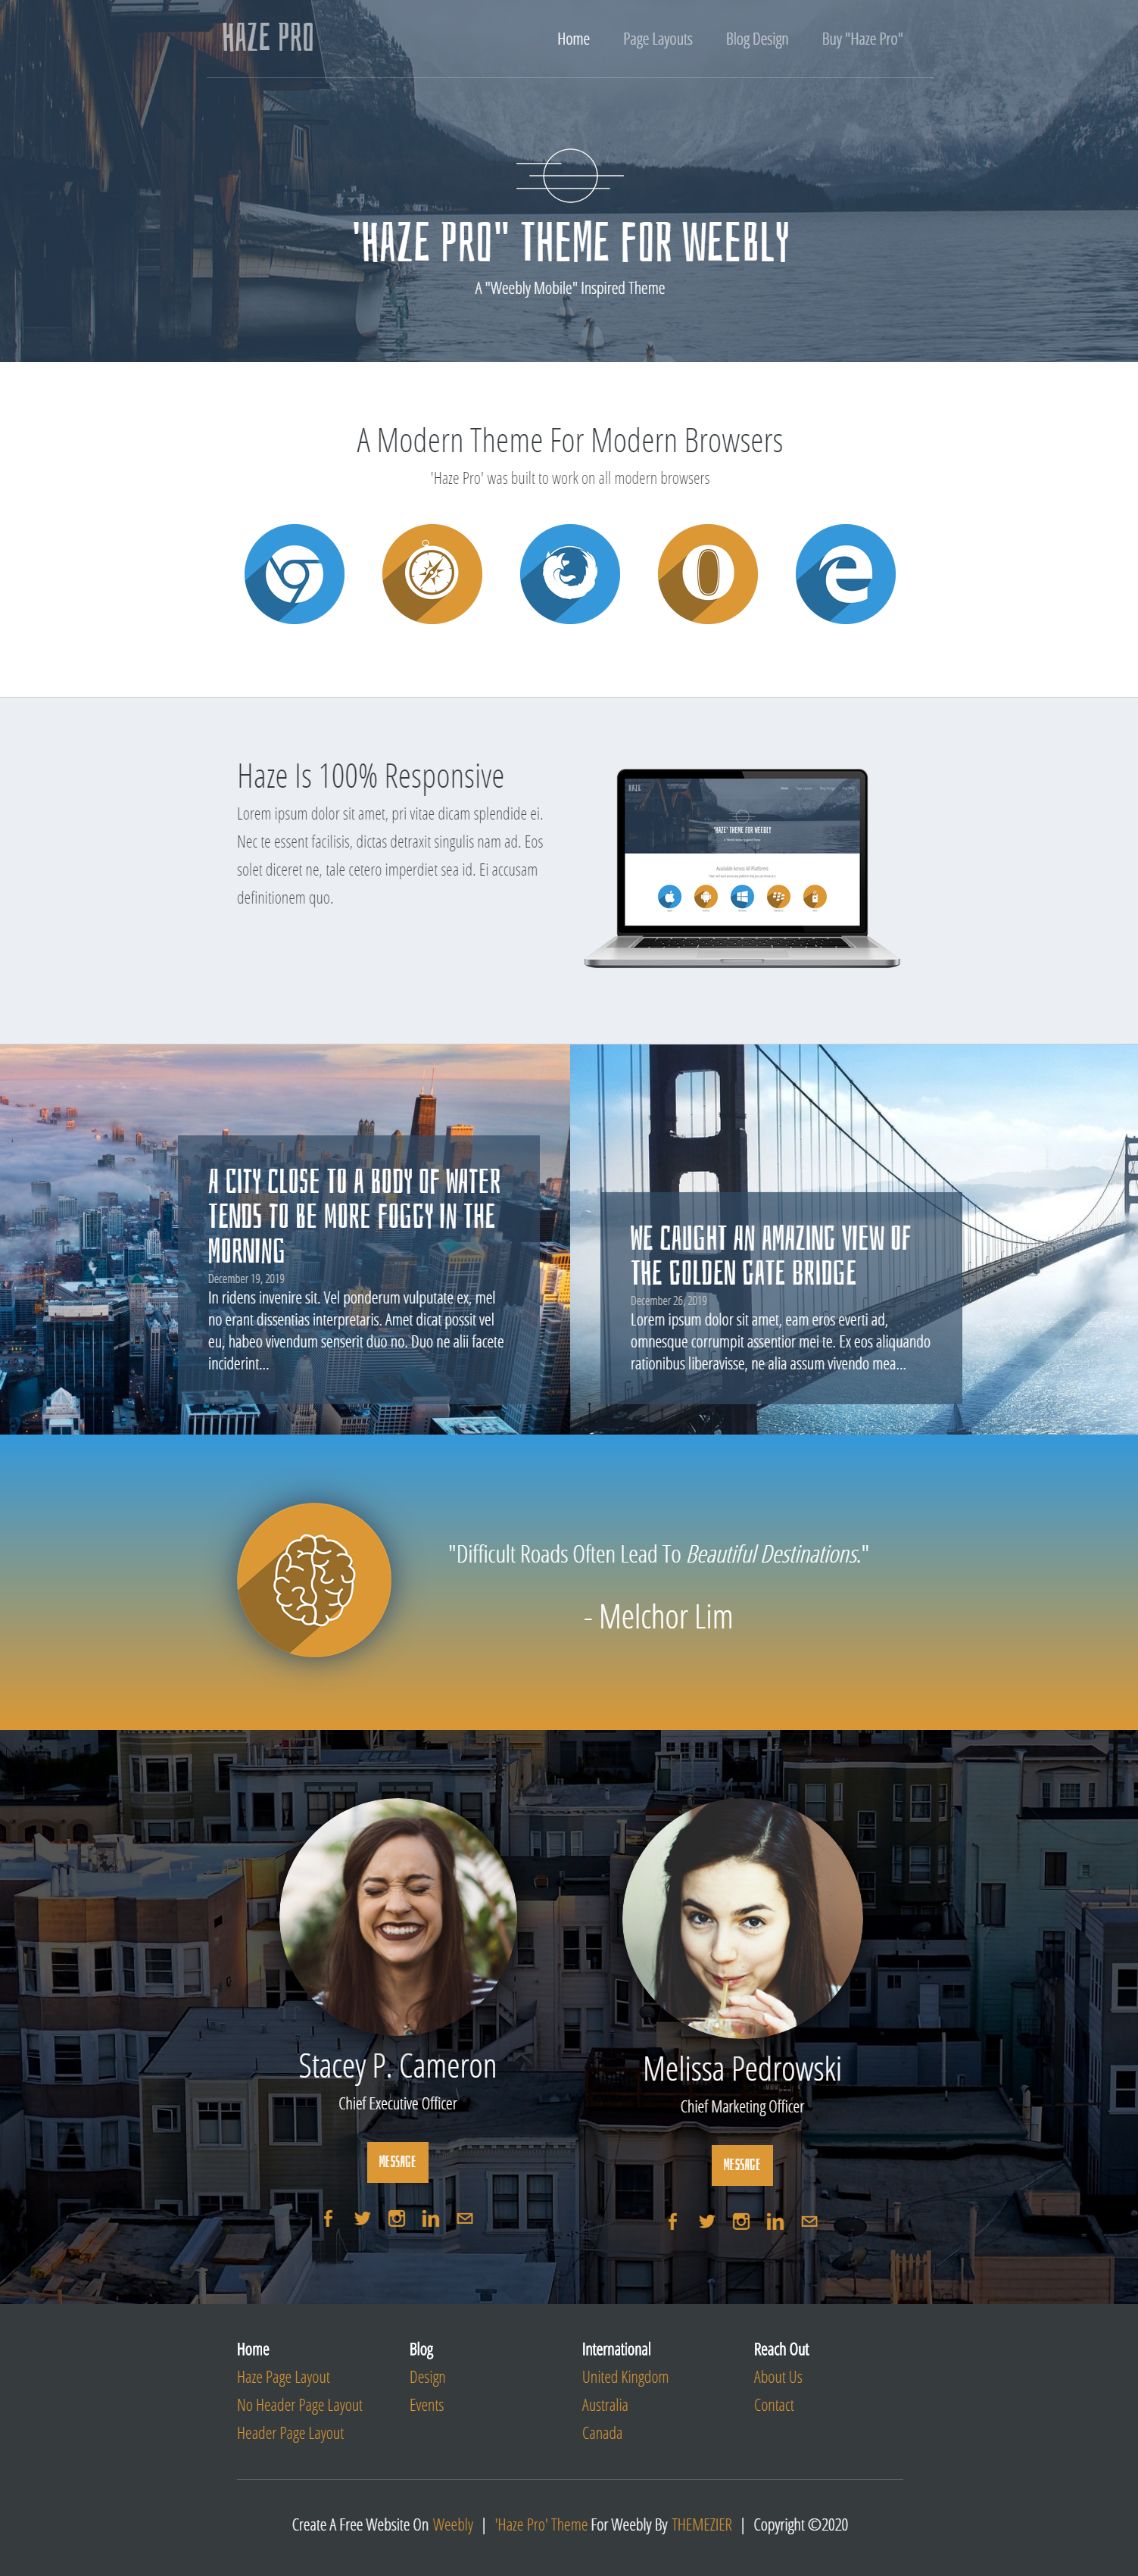 Haze Pro Weebly Business Theme